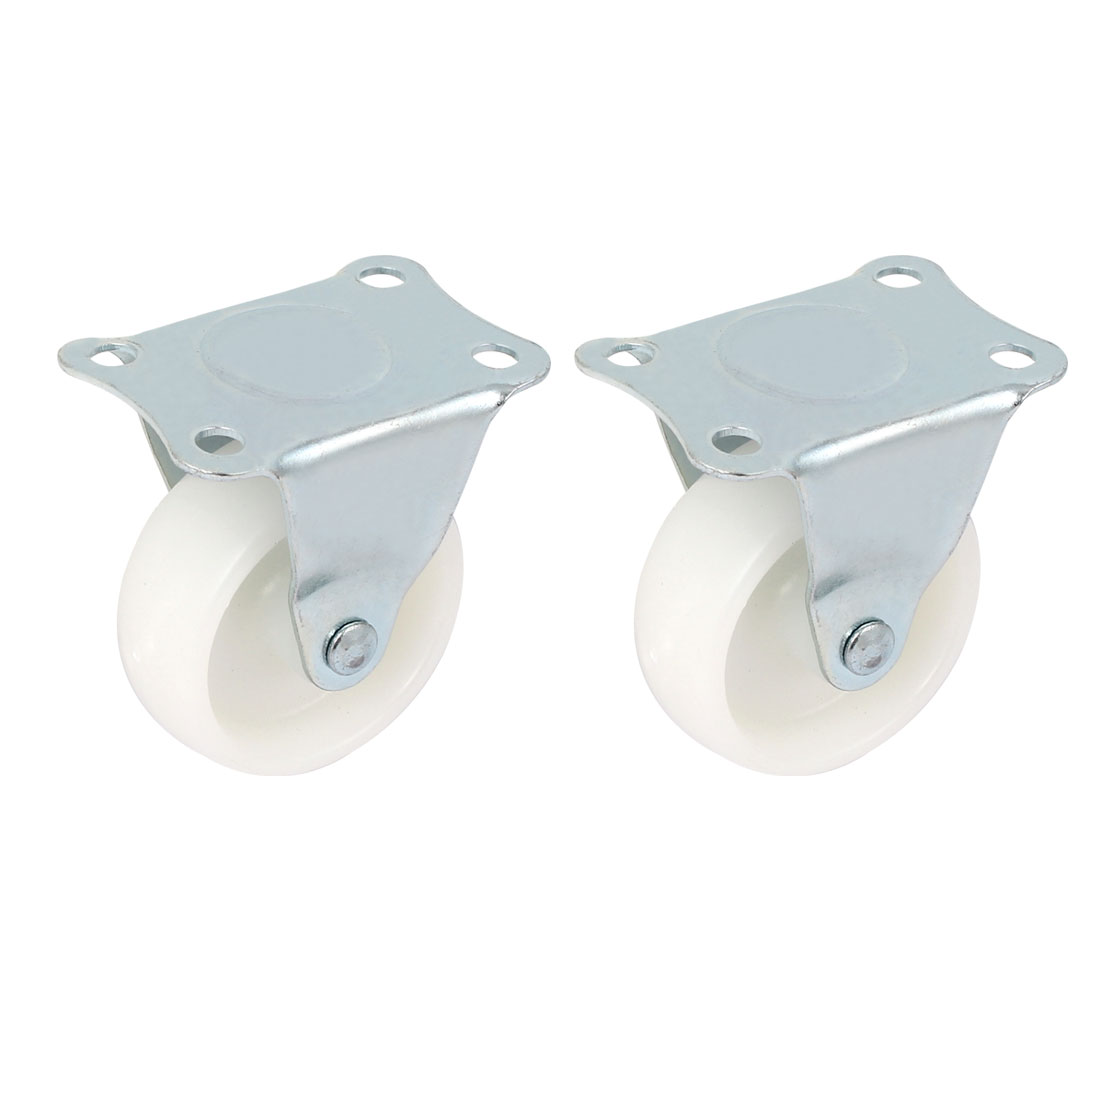 UXCELL Furniture Rectangle Fixed Metal Top Plate 2 Diameter Caster Wheel White 2Pcs hot sale in stock new 4 pcs practical 1 plastic wheel rectangle top plate fixed swivel caster set